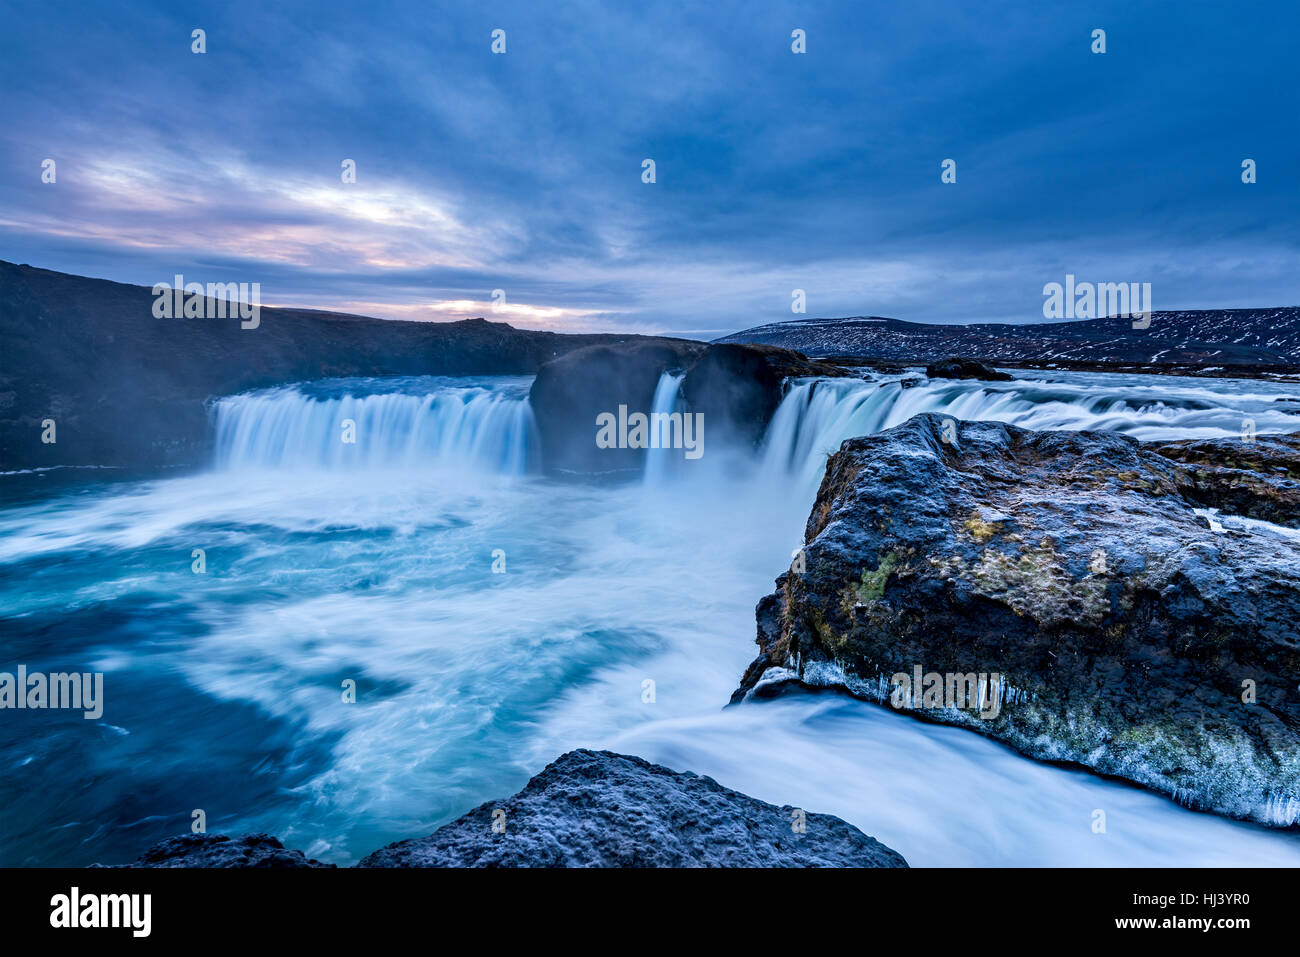 Godafoss Falls during Sunrise shows the water pouring over the edge and kicking up a misty cloud over the water - Stock Image